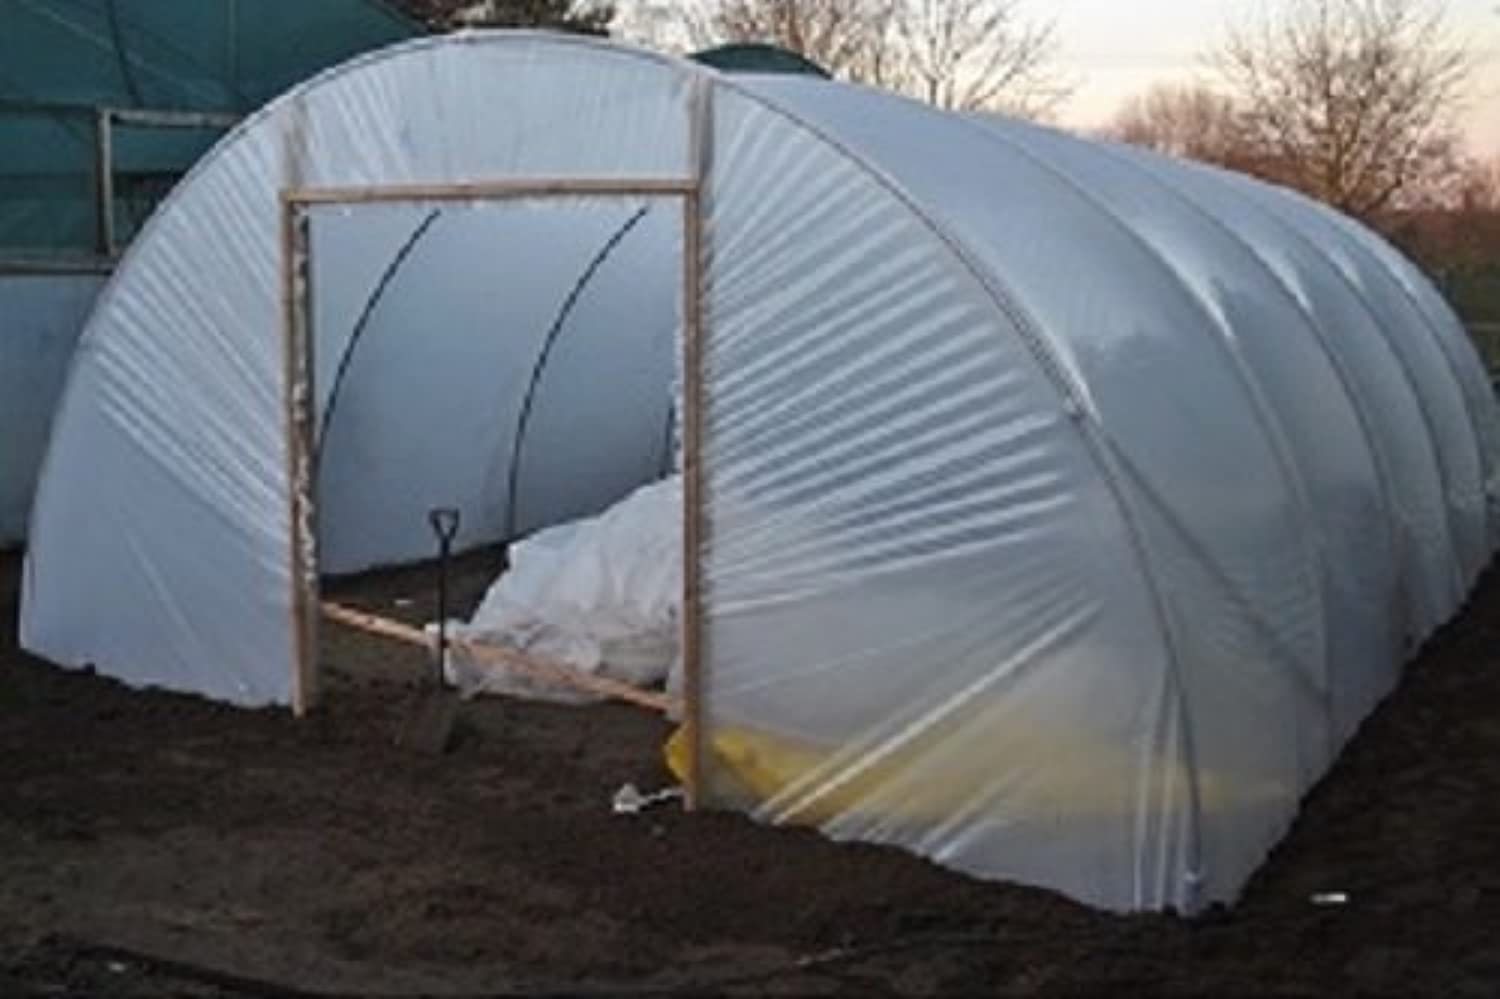 Direct Plants 14ft x 18ft Full Curve Conventional Polytunnel KitHeavy Duty Professional Greenhouse